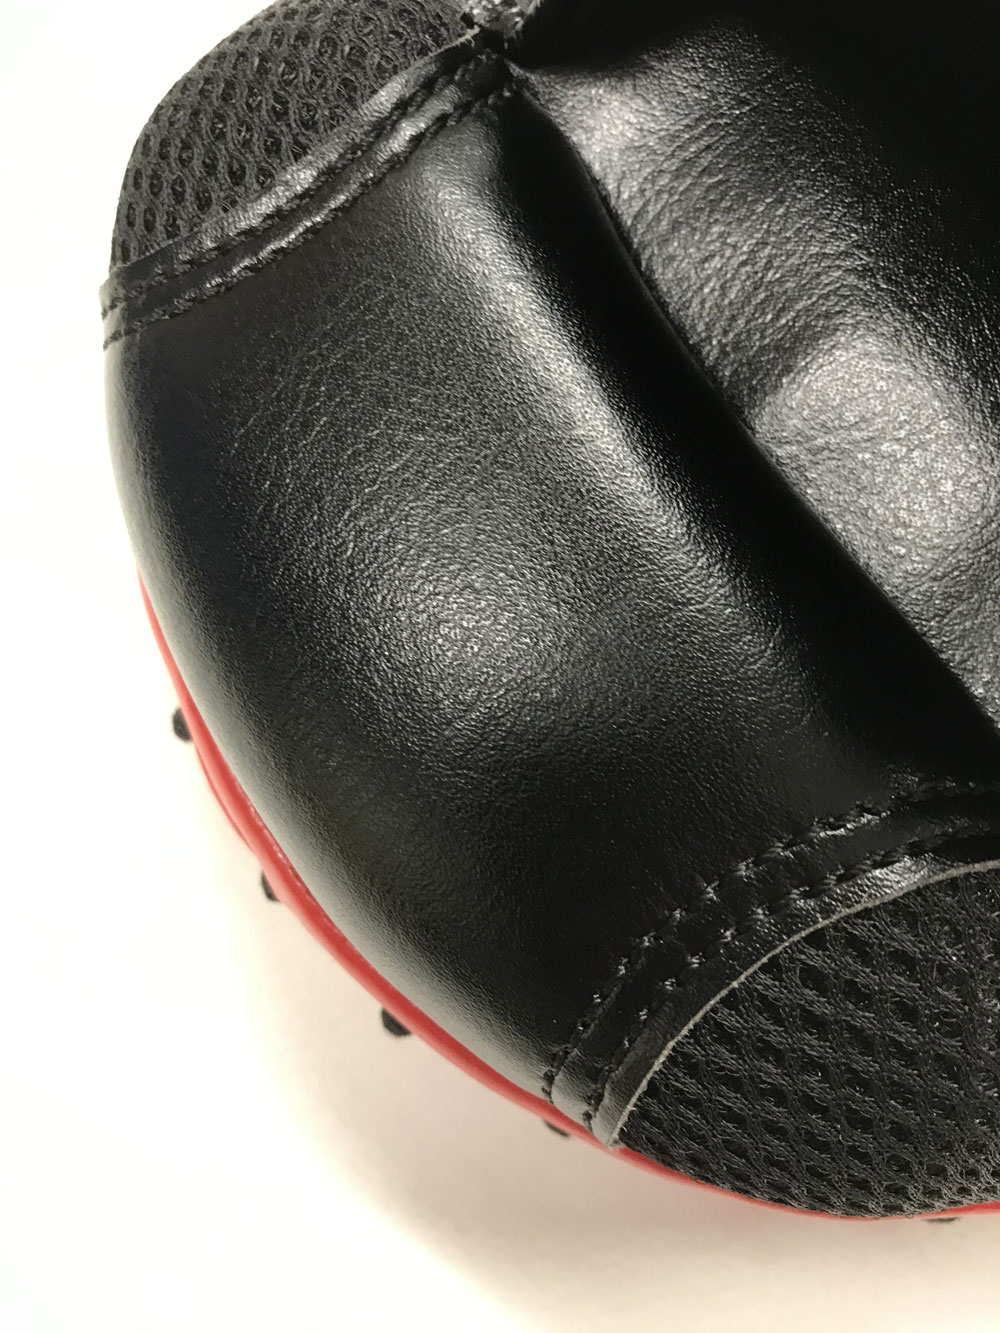 GRIT CONCAVE FOCUS PUNCH MITTS (High spec model)